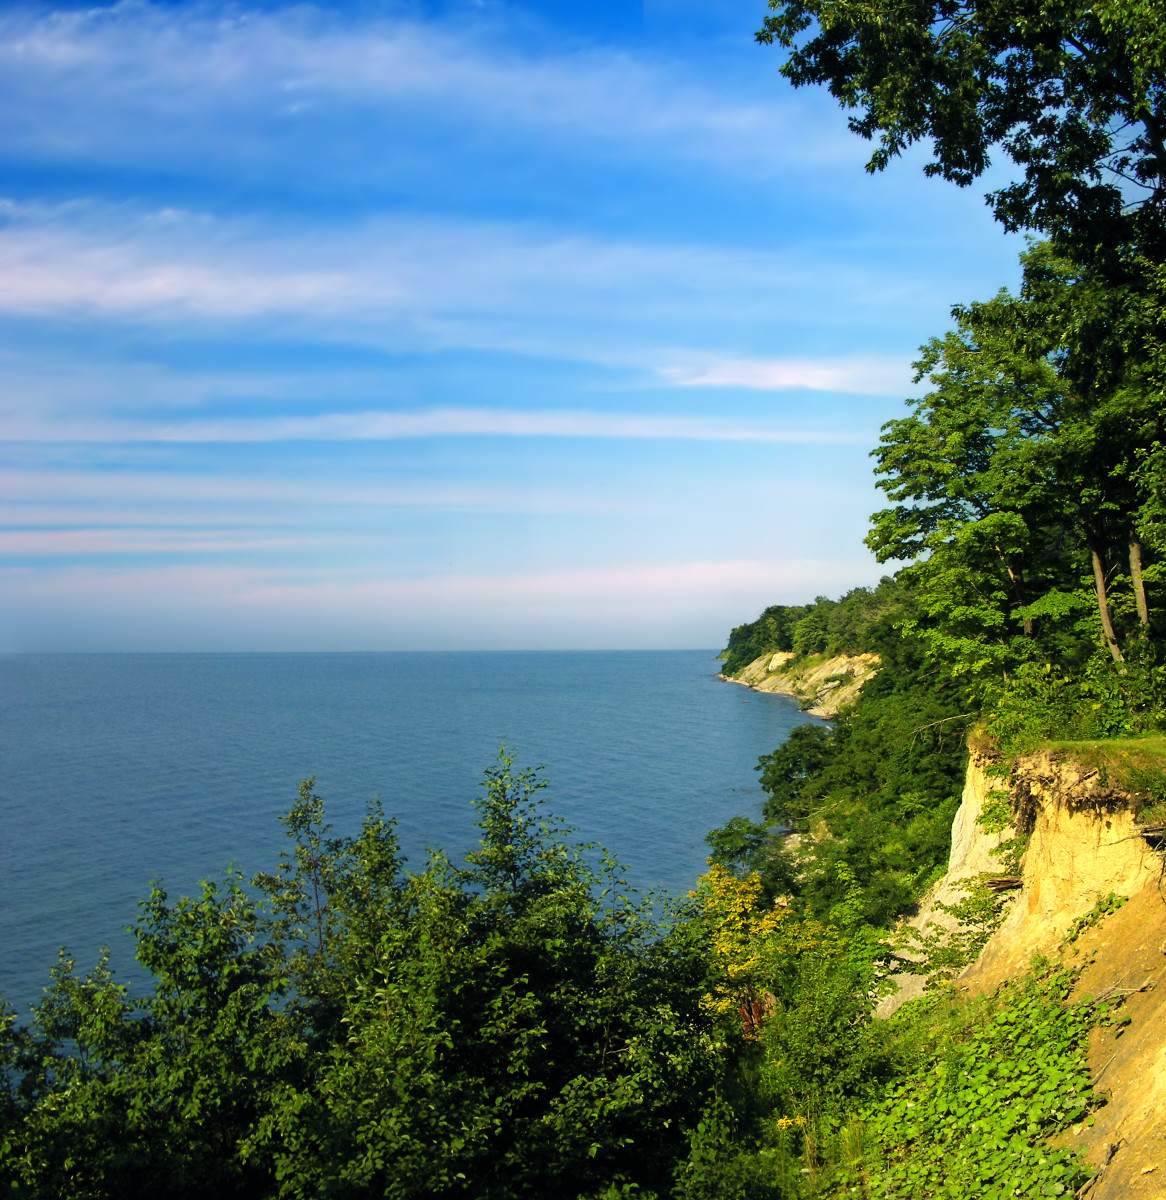 Brominated flame retardants have been found in Lake Erie.